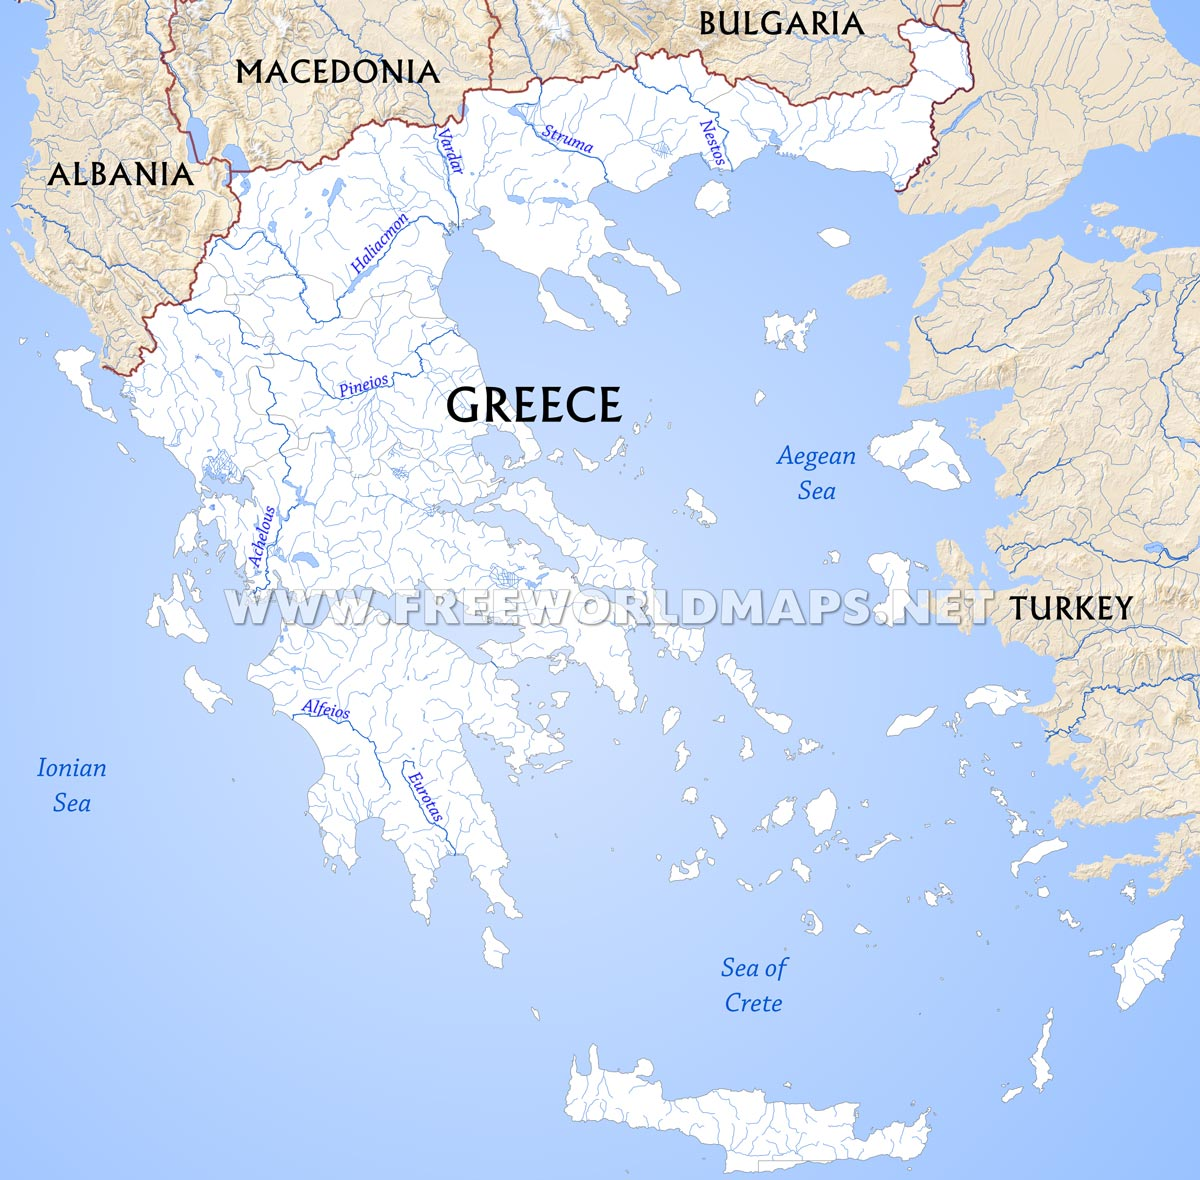 Greece physical map greek islands map showing the major islands and peninsulas of greece greece rivers gumiabroncs Image collections